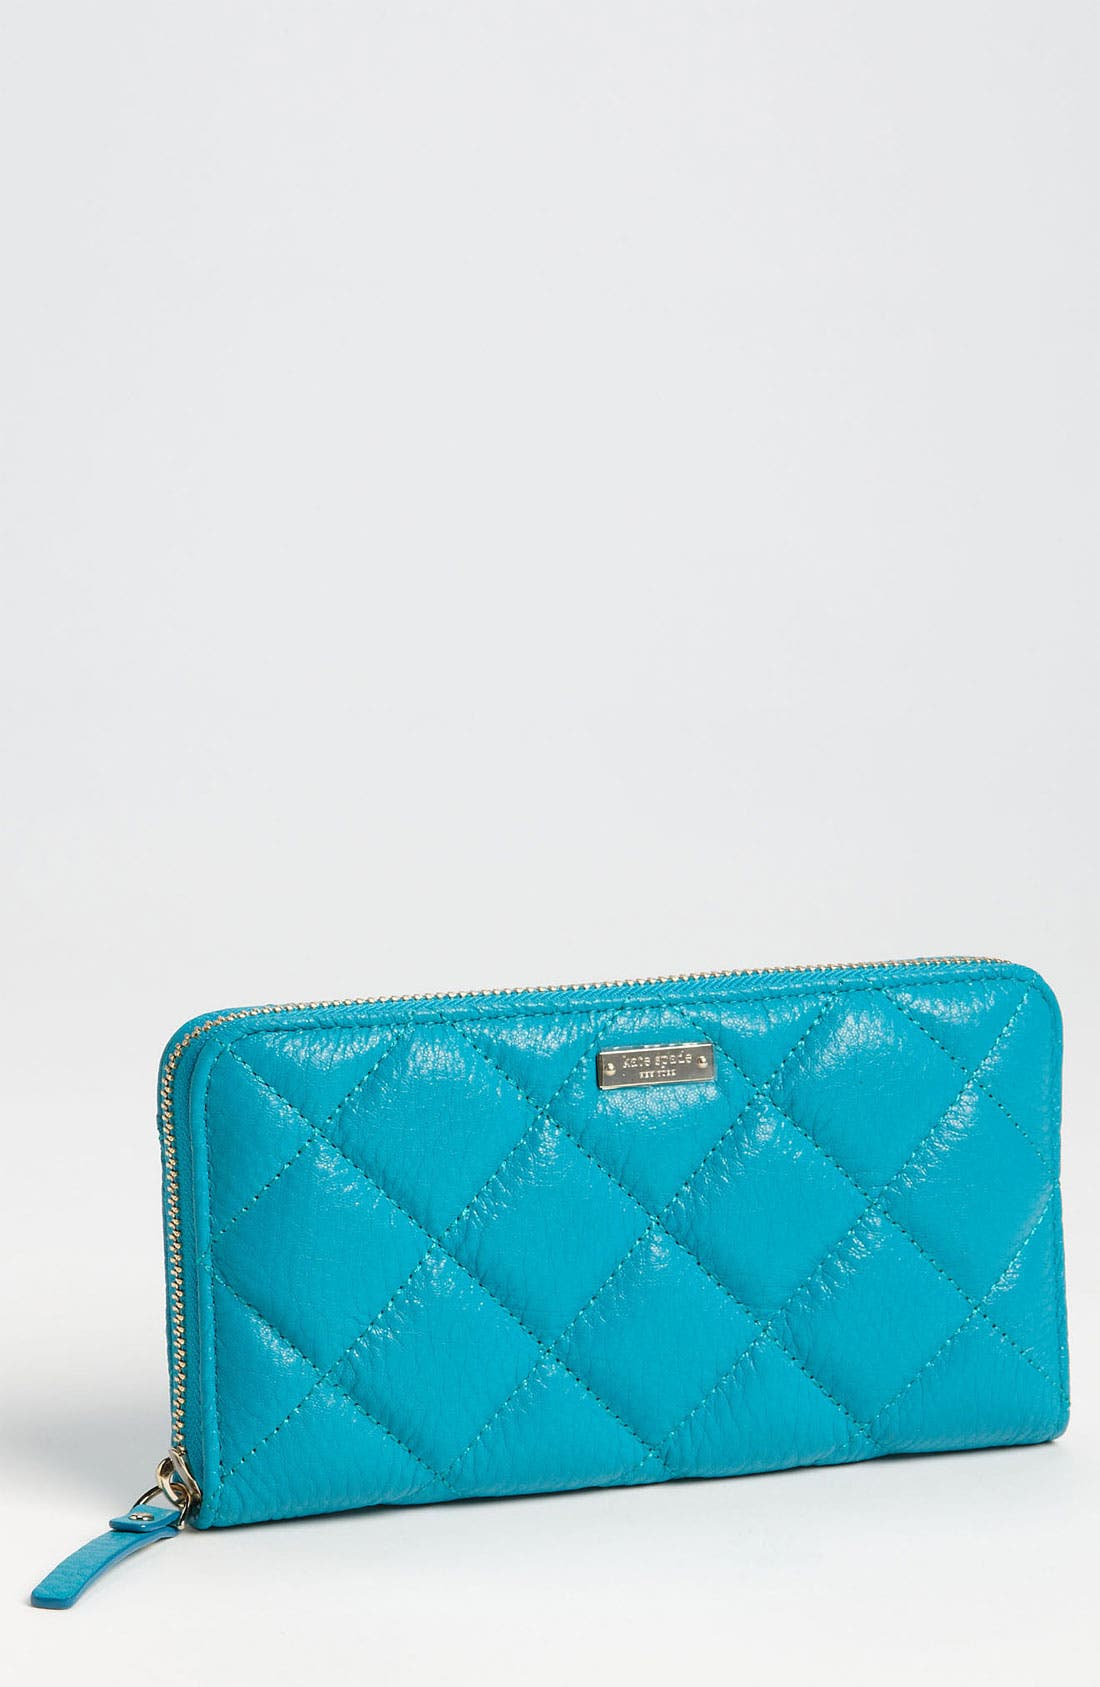 Alternate Image 1 Selected - kate spade new york 'gold coast - lacey' zip around wallet